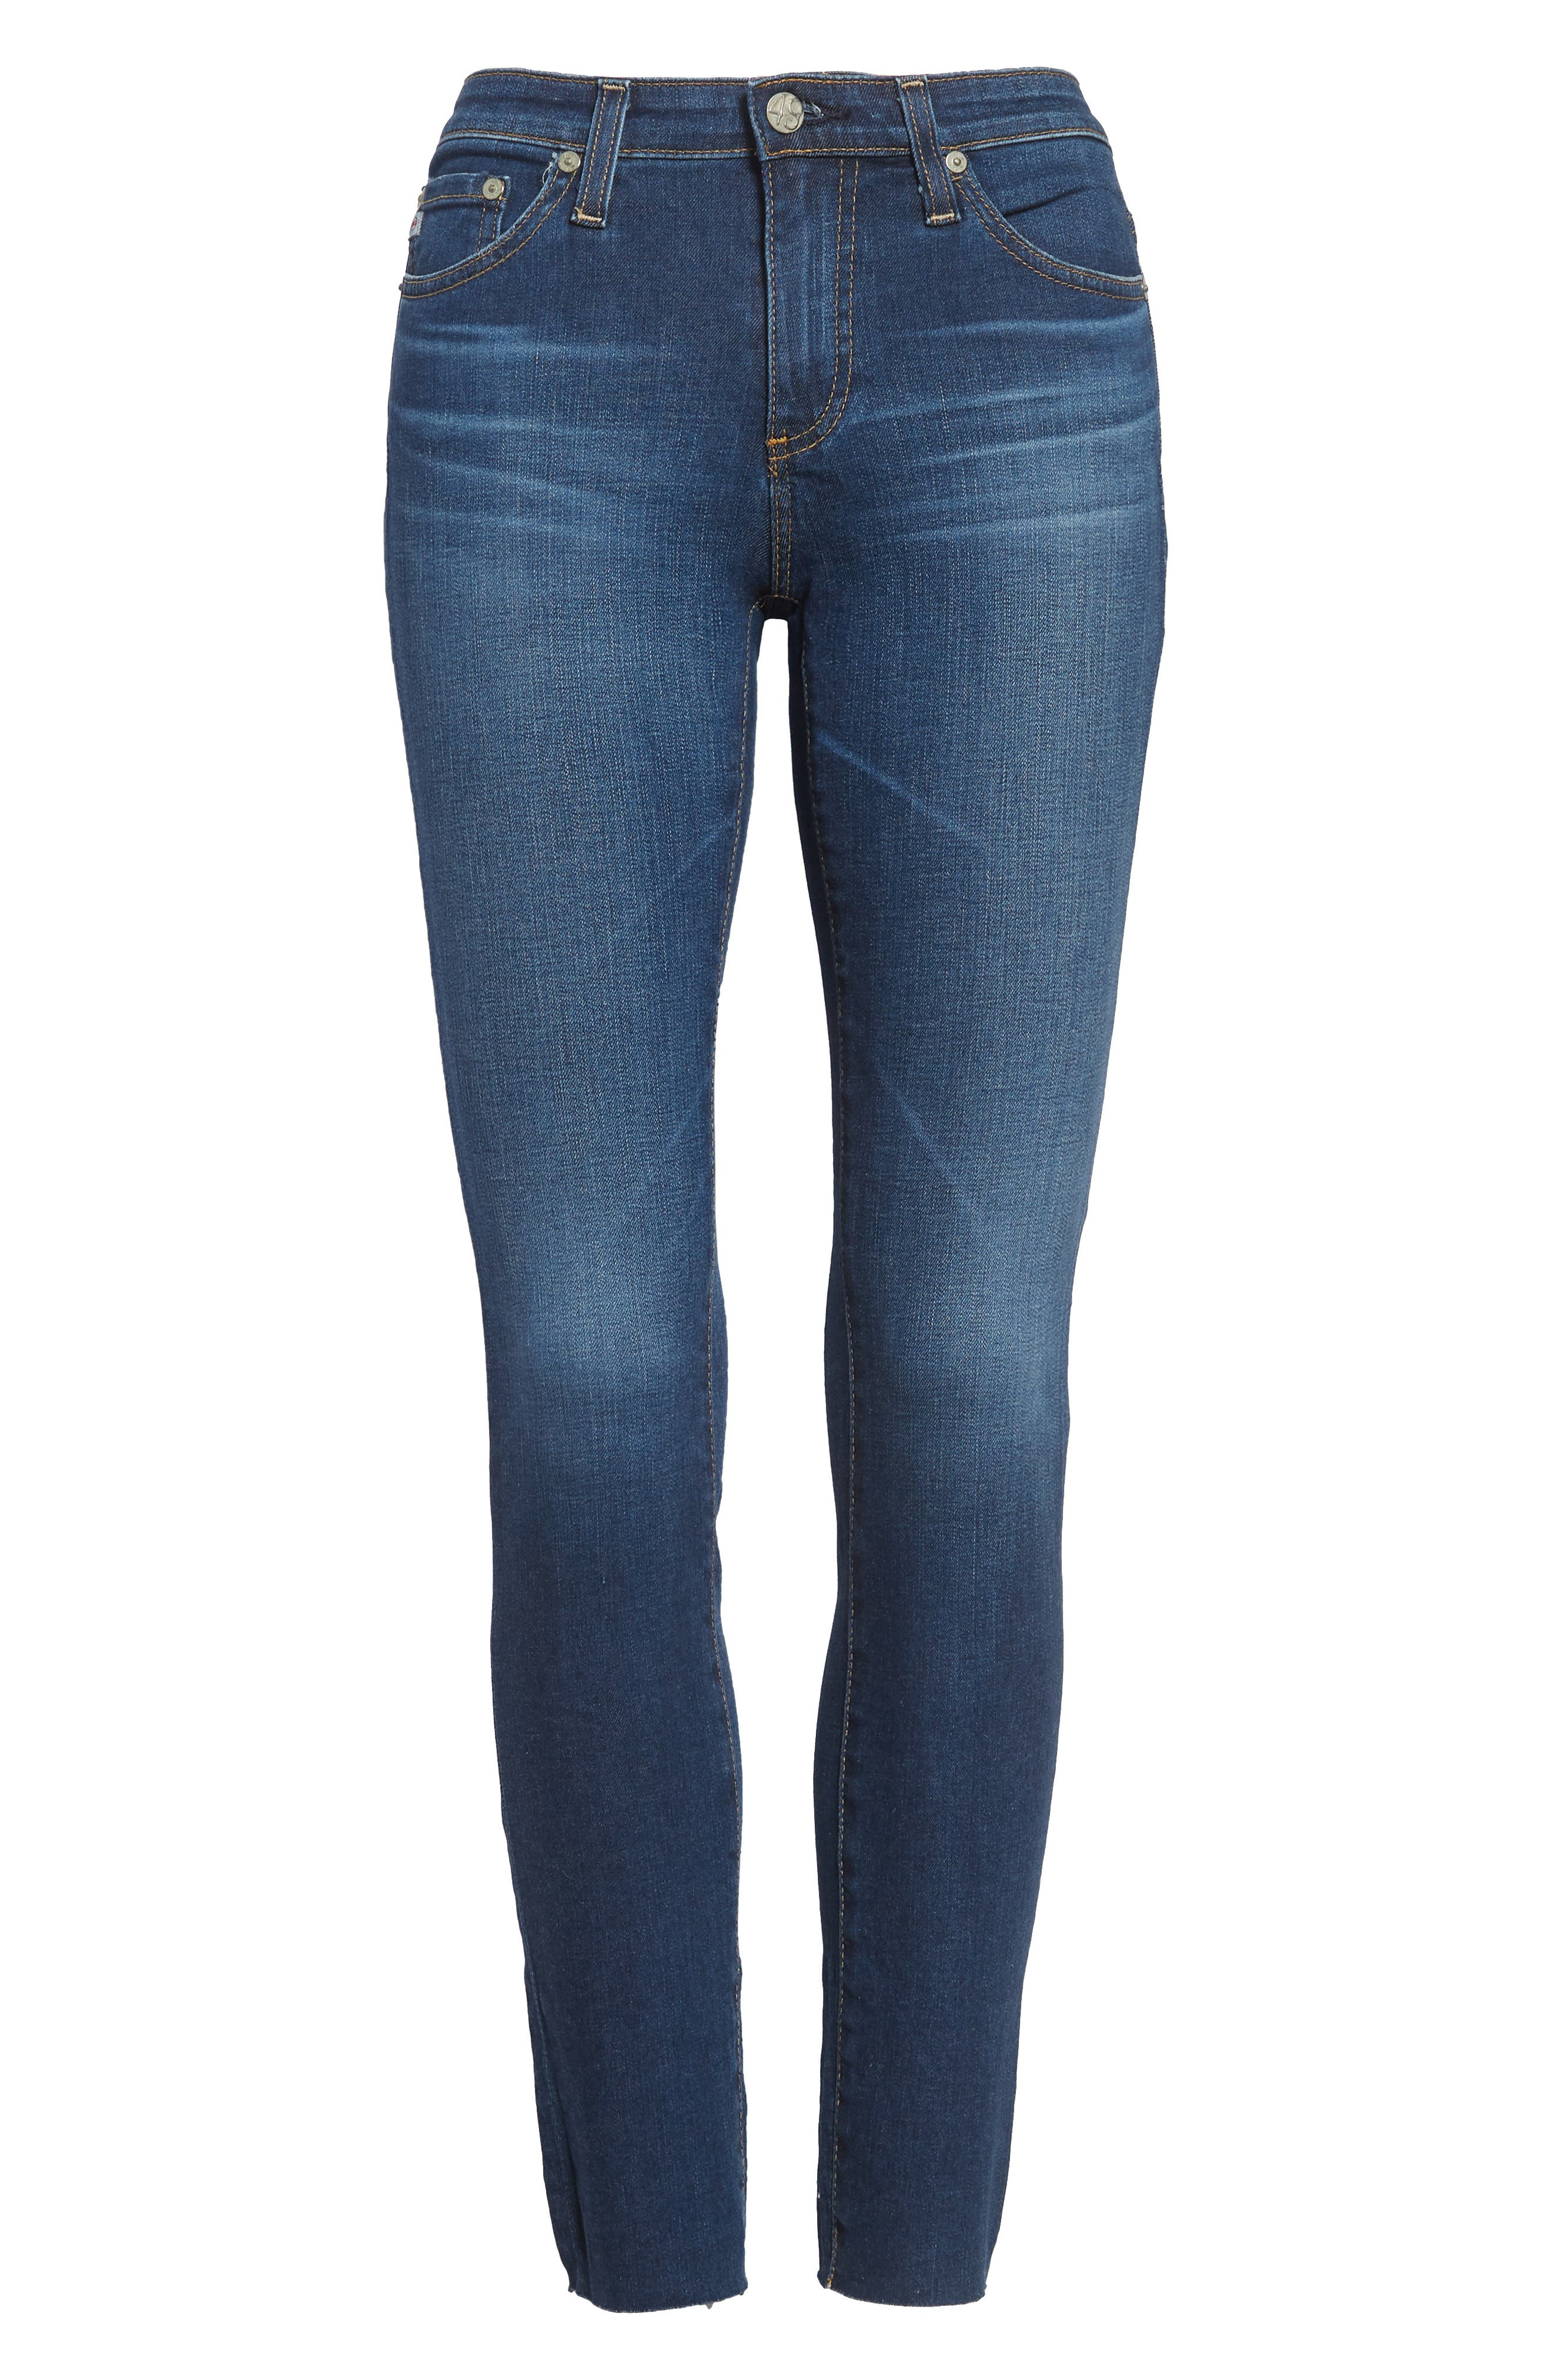 AG 'The Legging' Ankle Jeans, Main, color, 7YR BREAK W/ RAW HEM